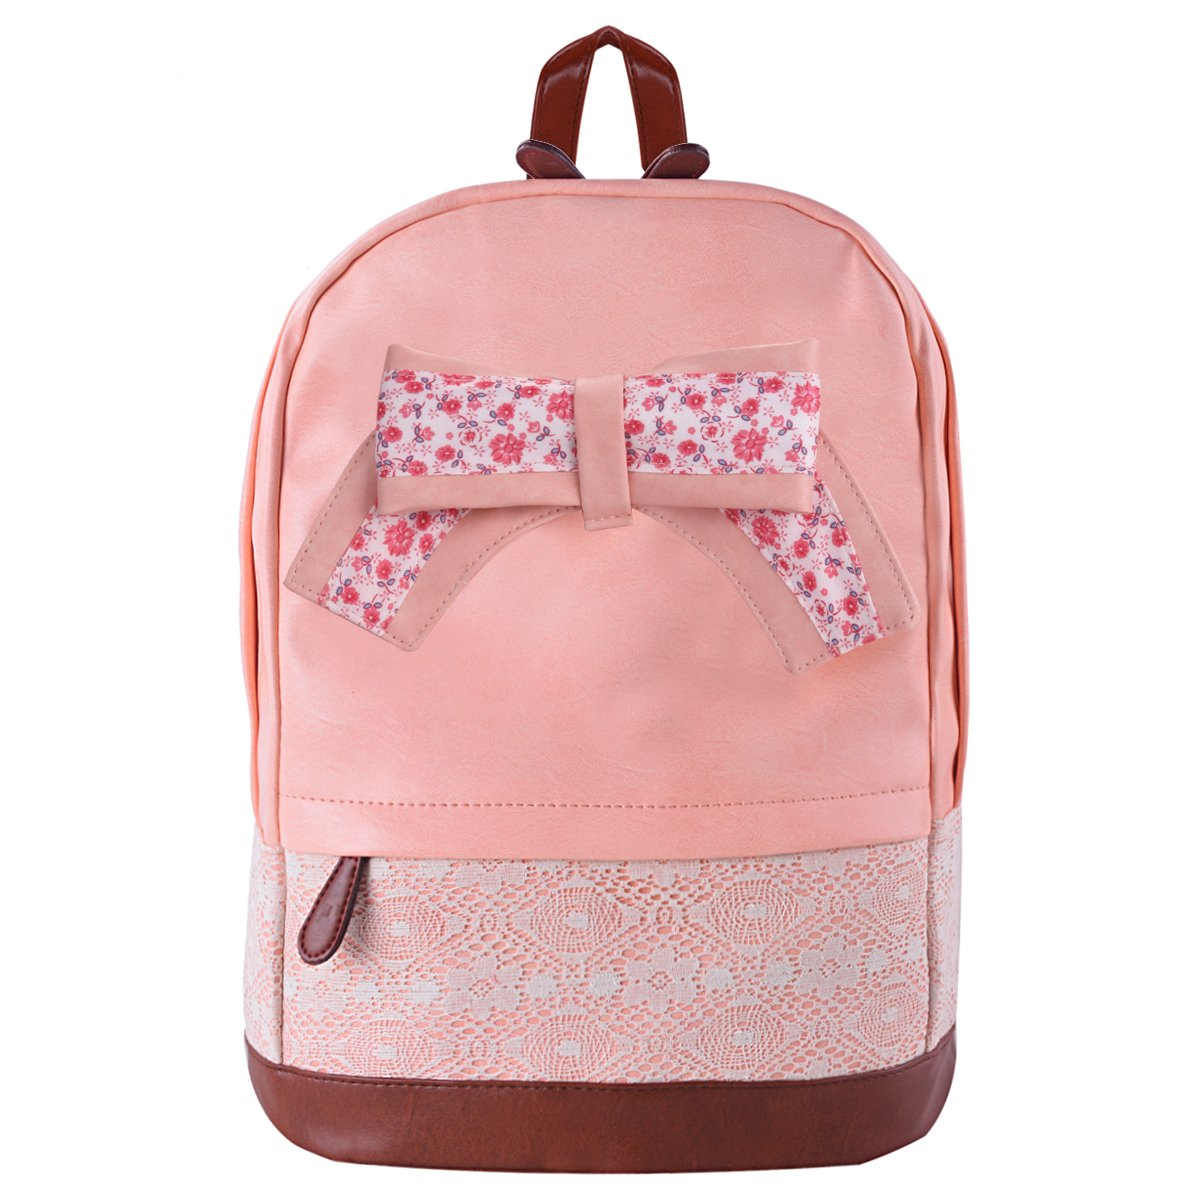 coofit backpack vintage rucksack canvas schoolbags